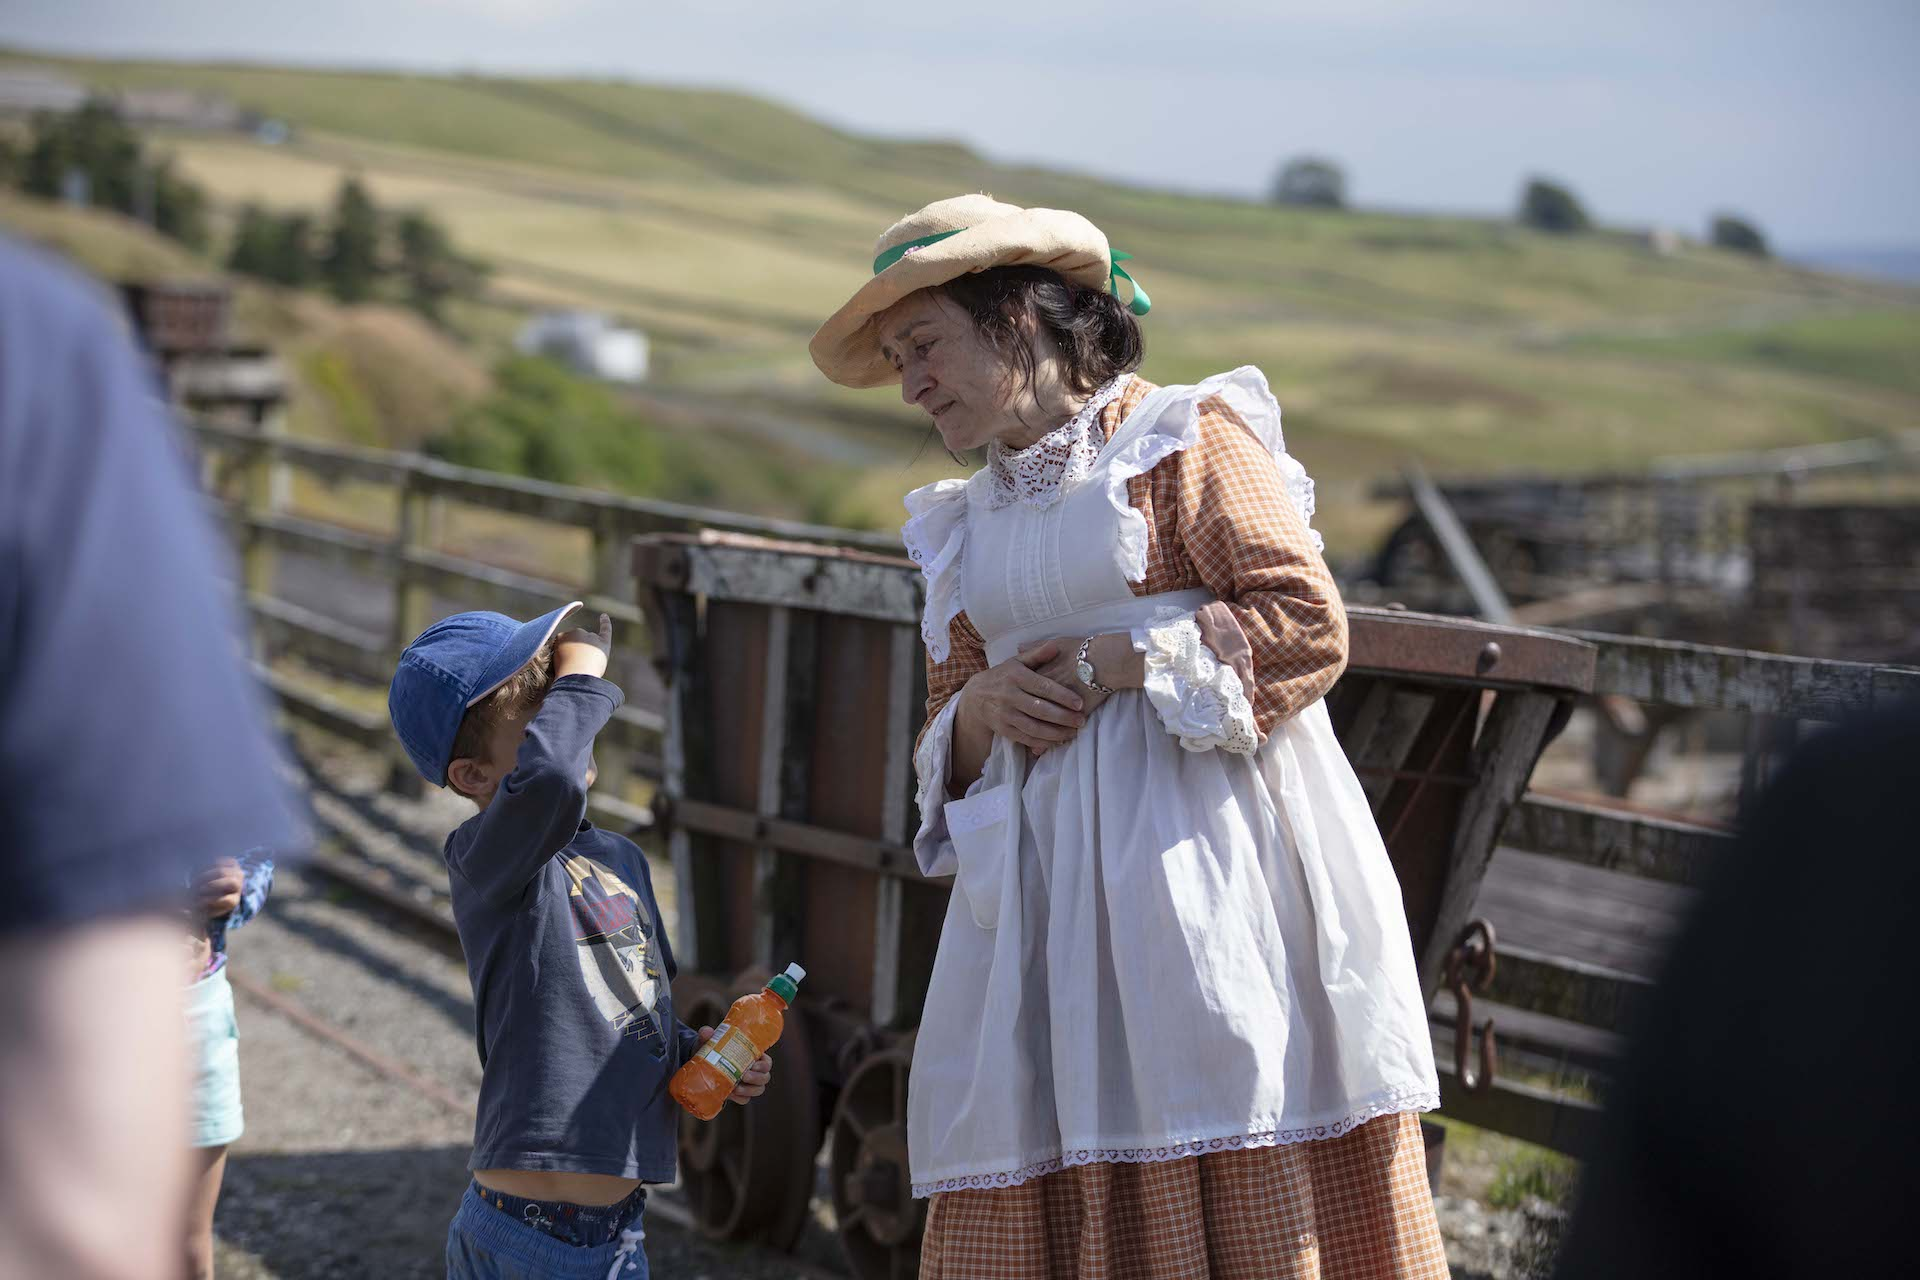 Lady in old traditional clothes talking to young boy at Killhope Mine